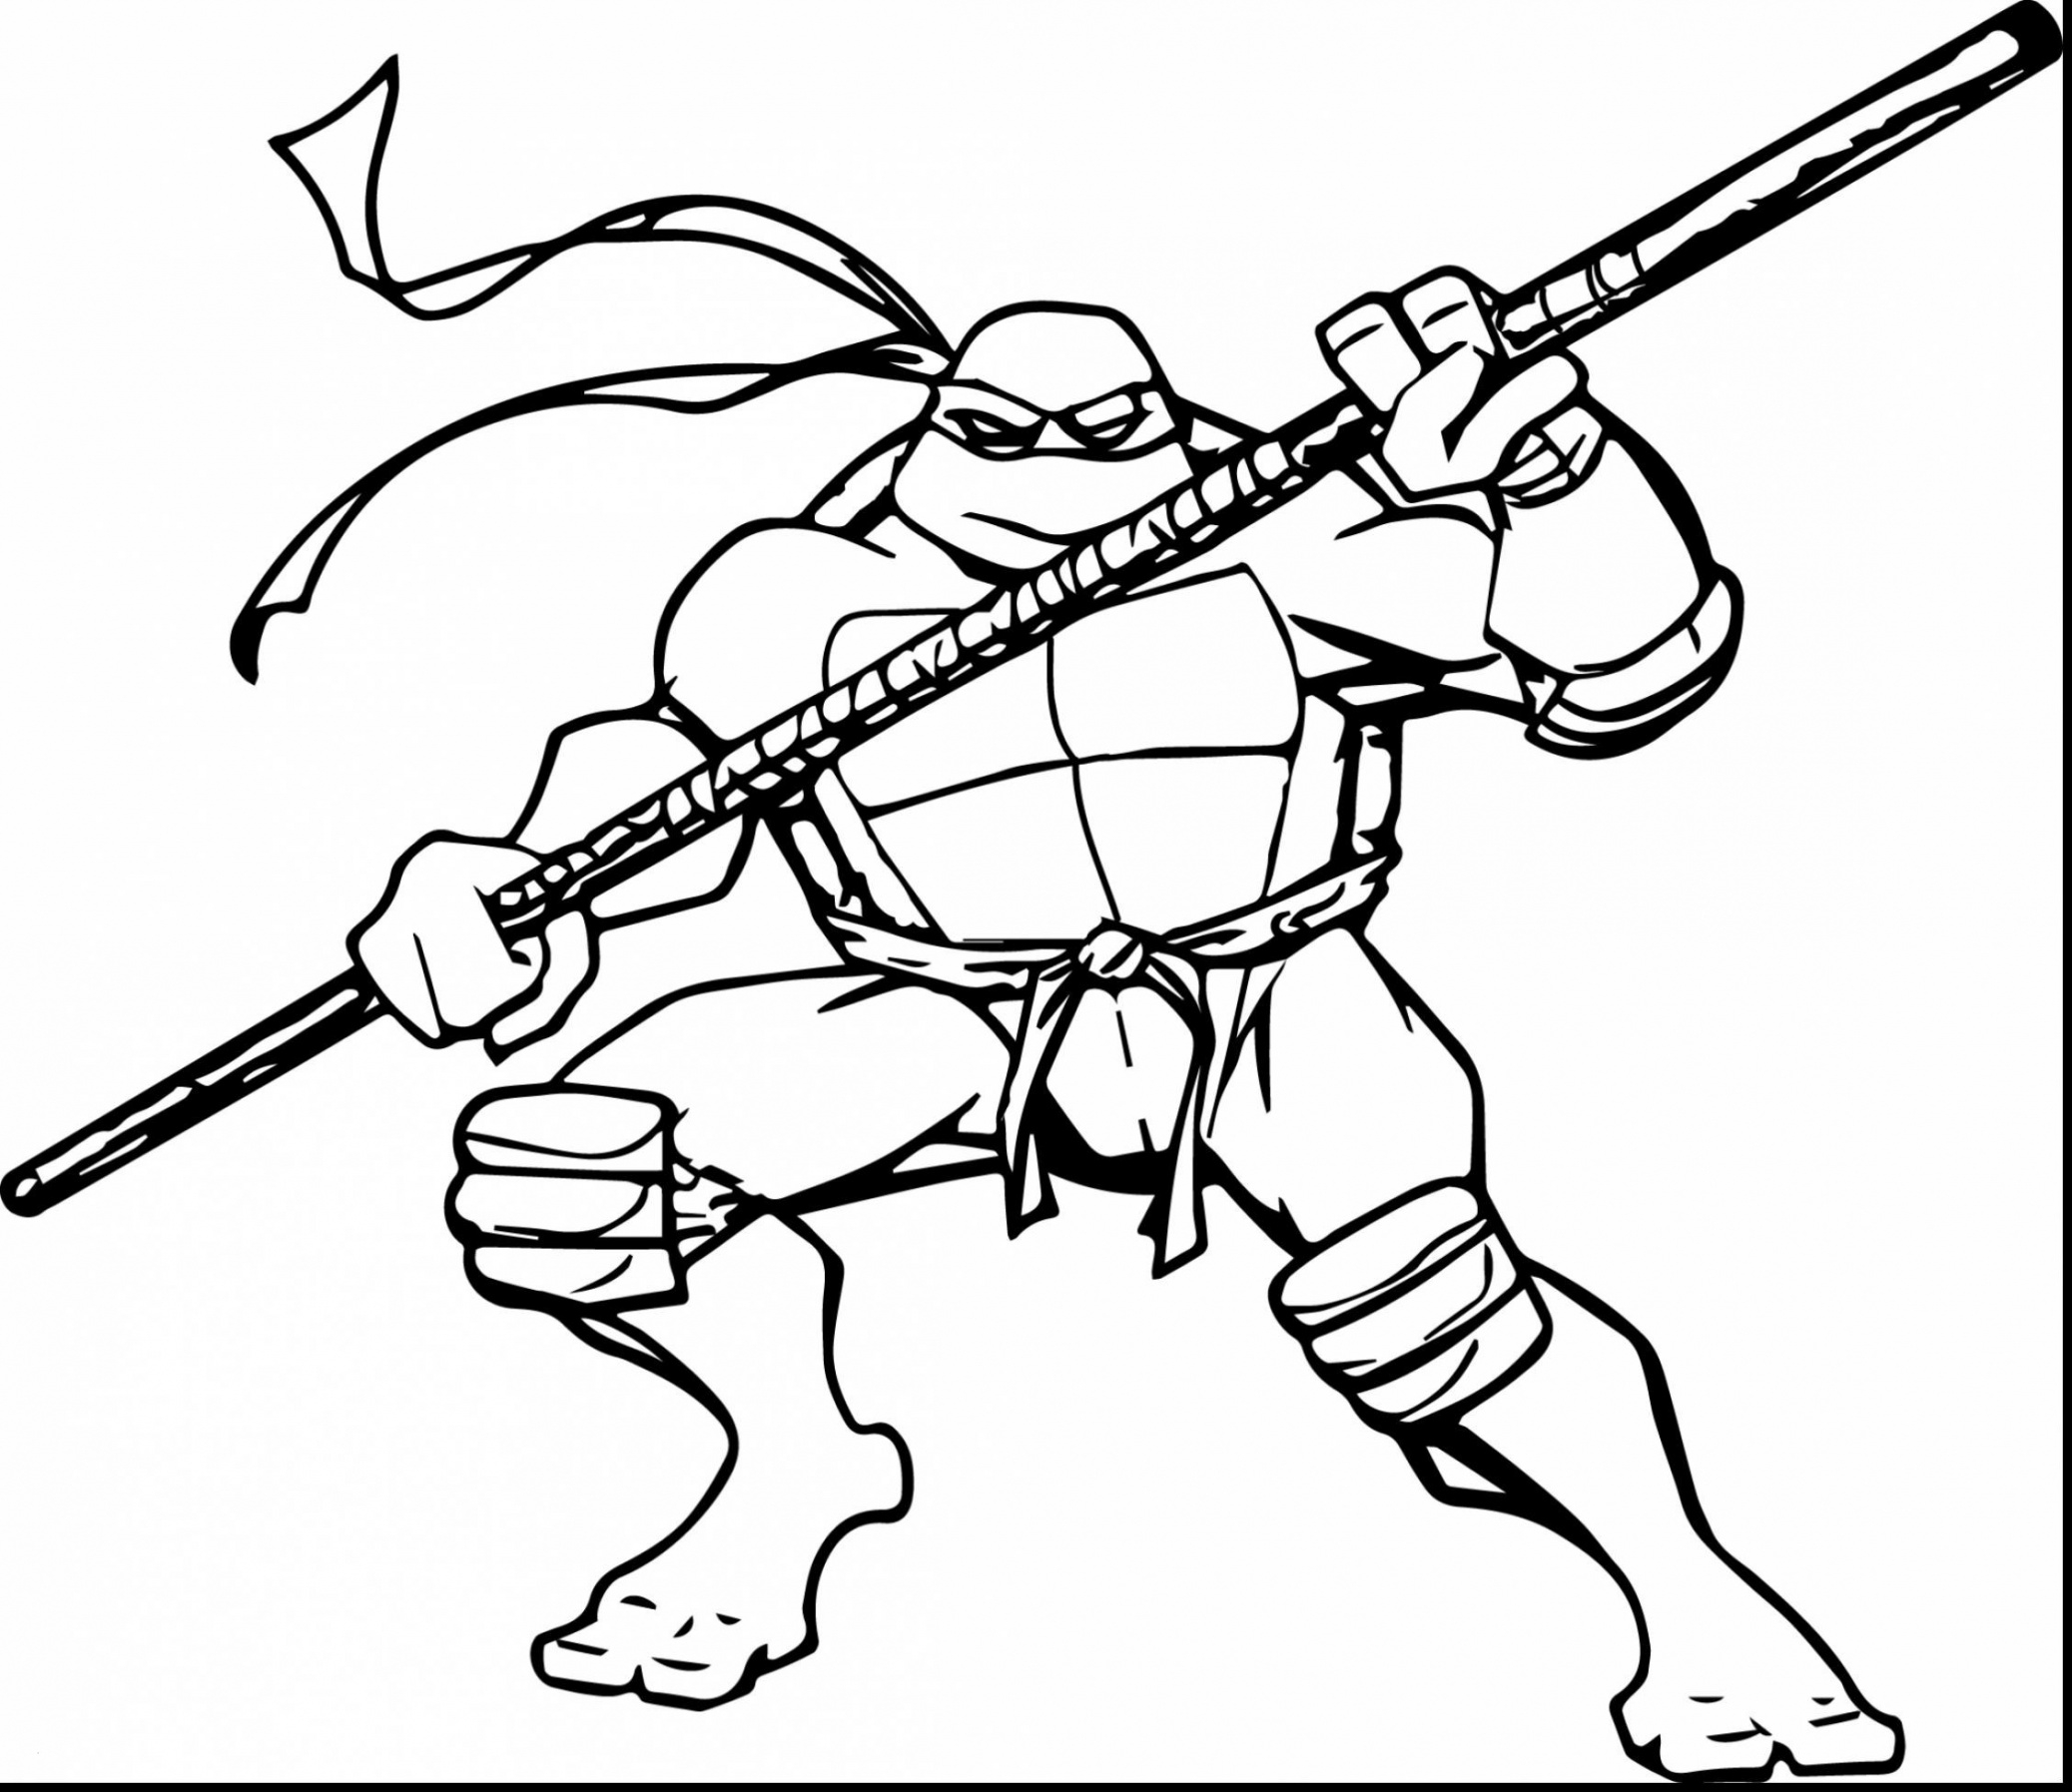 ninja turtles colouring pictures to print ninja turtles colouring pictures to print turtles colouring print ninja to pictures